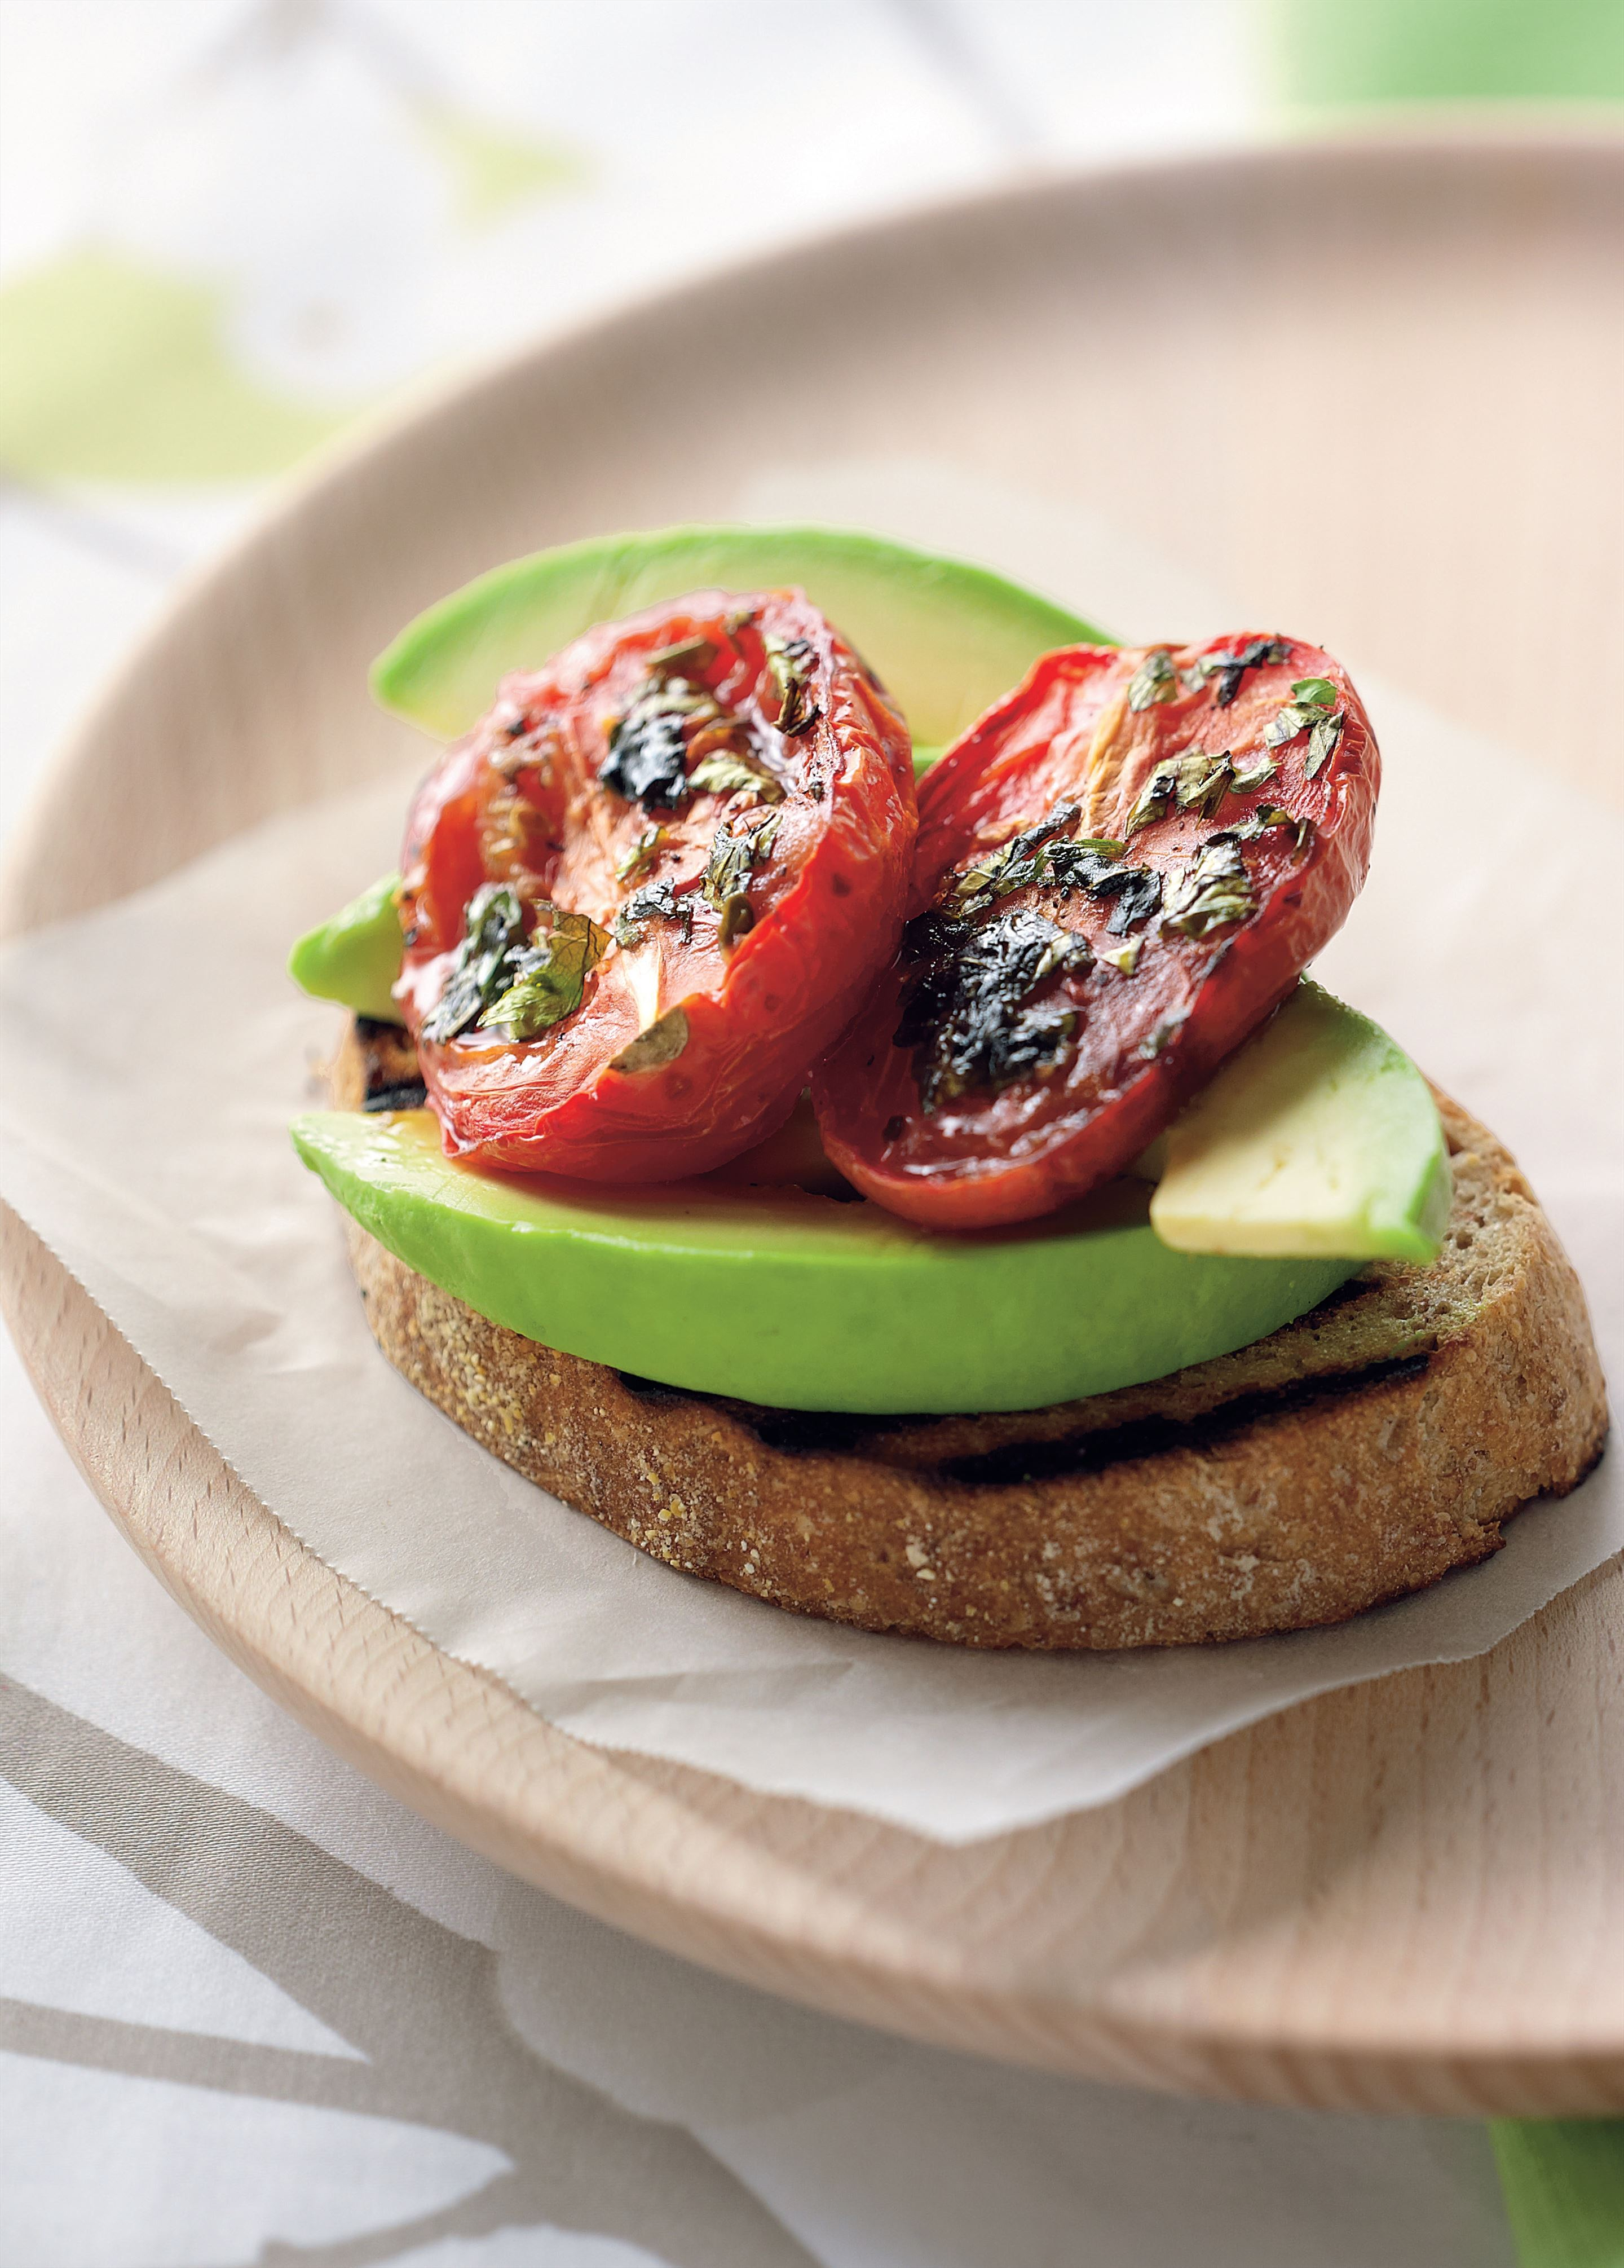 Avocado and roasted tomato on toast